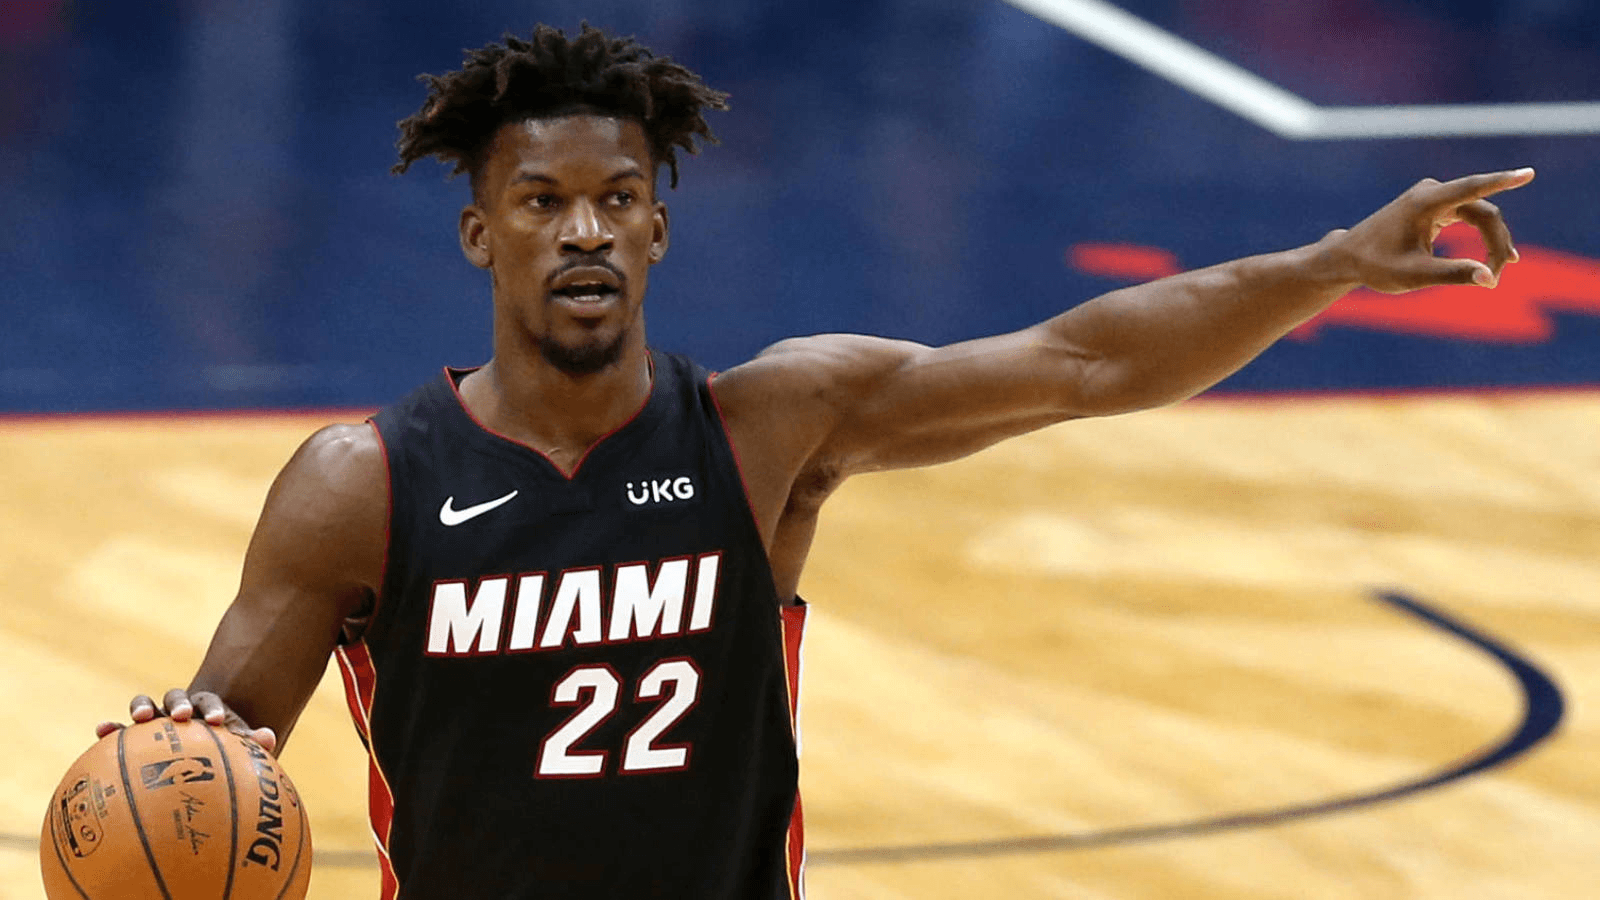 Mar 4, 2021; New Orleans, Louisiana, USA; Miami Heat forward Jimmy Butler (22) gestures in the first quarter against the New Orleans Pelicans at the Smoothie King Center. Mandatory Credit: Chuck Cook-USA TODAY Sports